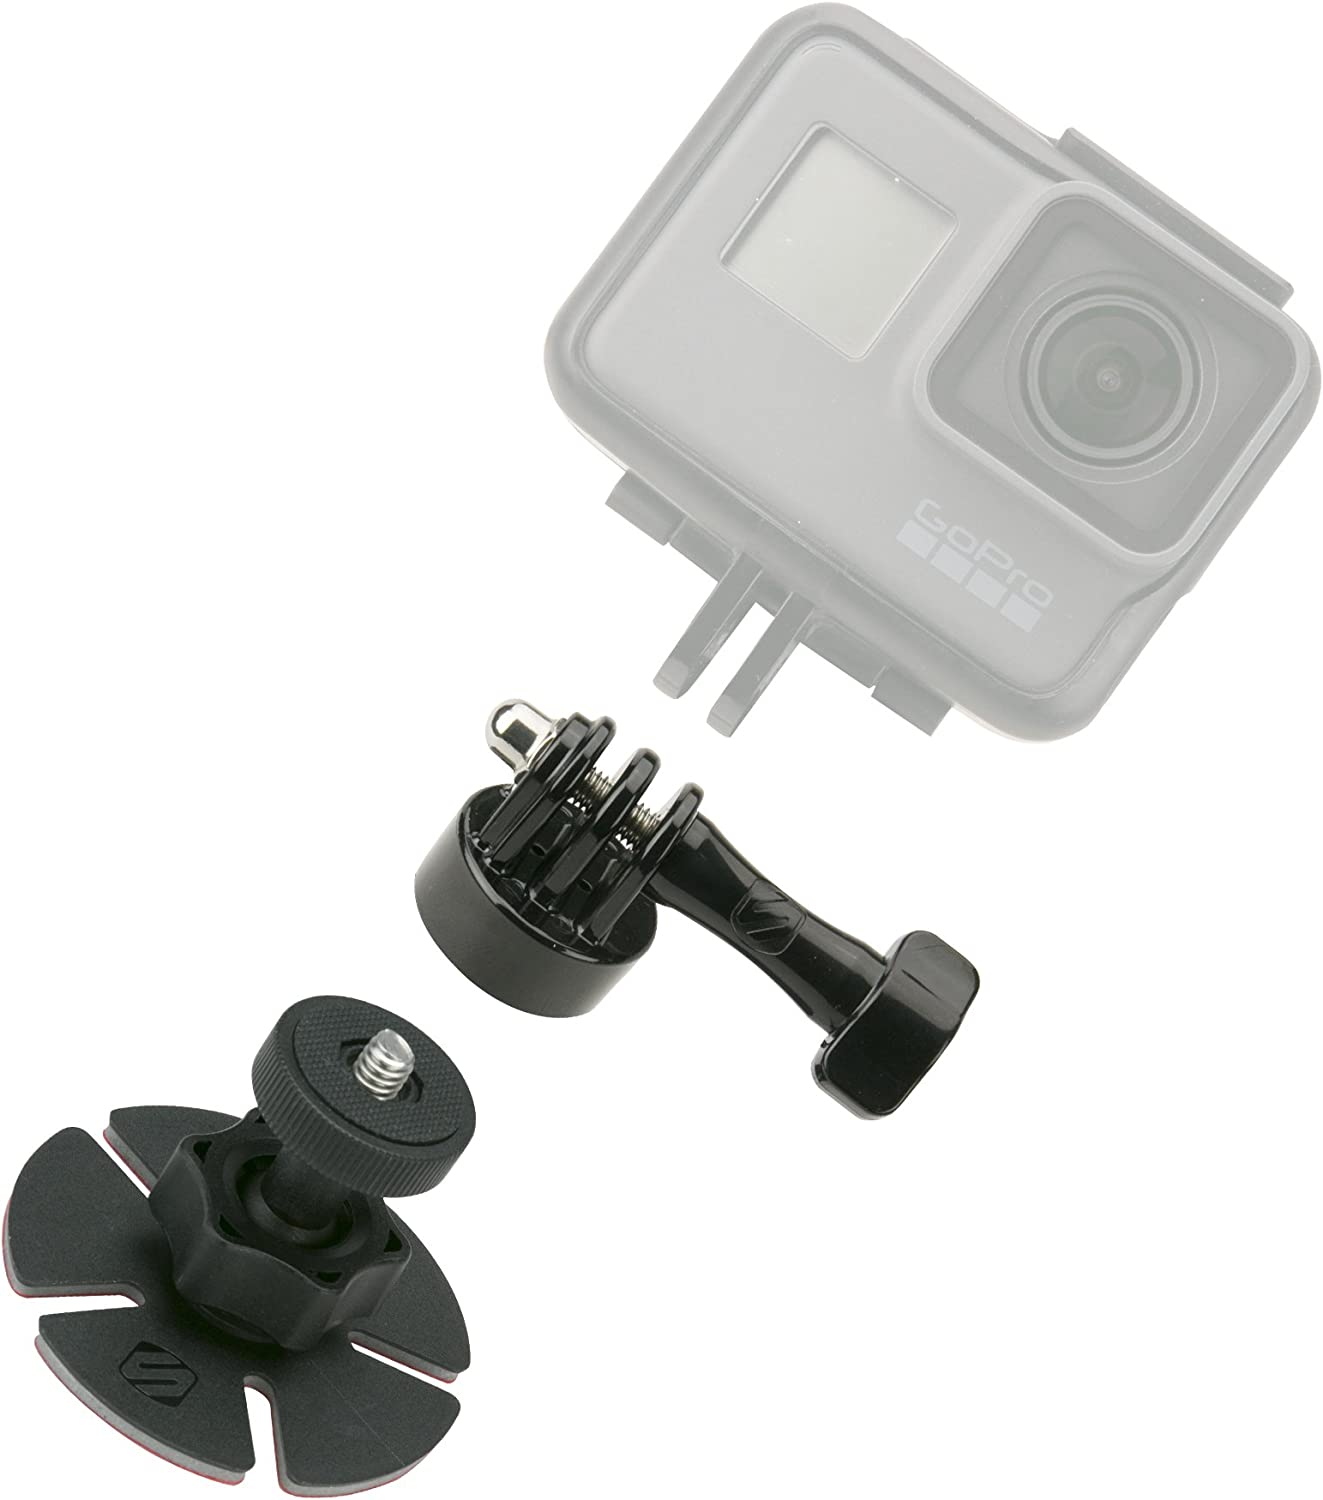 SCOSCHE AMK2-BPO Closeup Dealing full price reduction KIT Universal Action Mount Camera Indianapolis Mall with